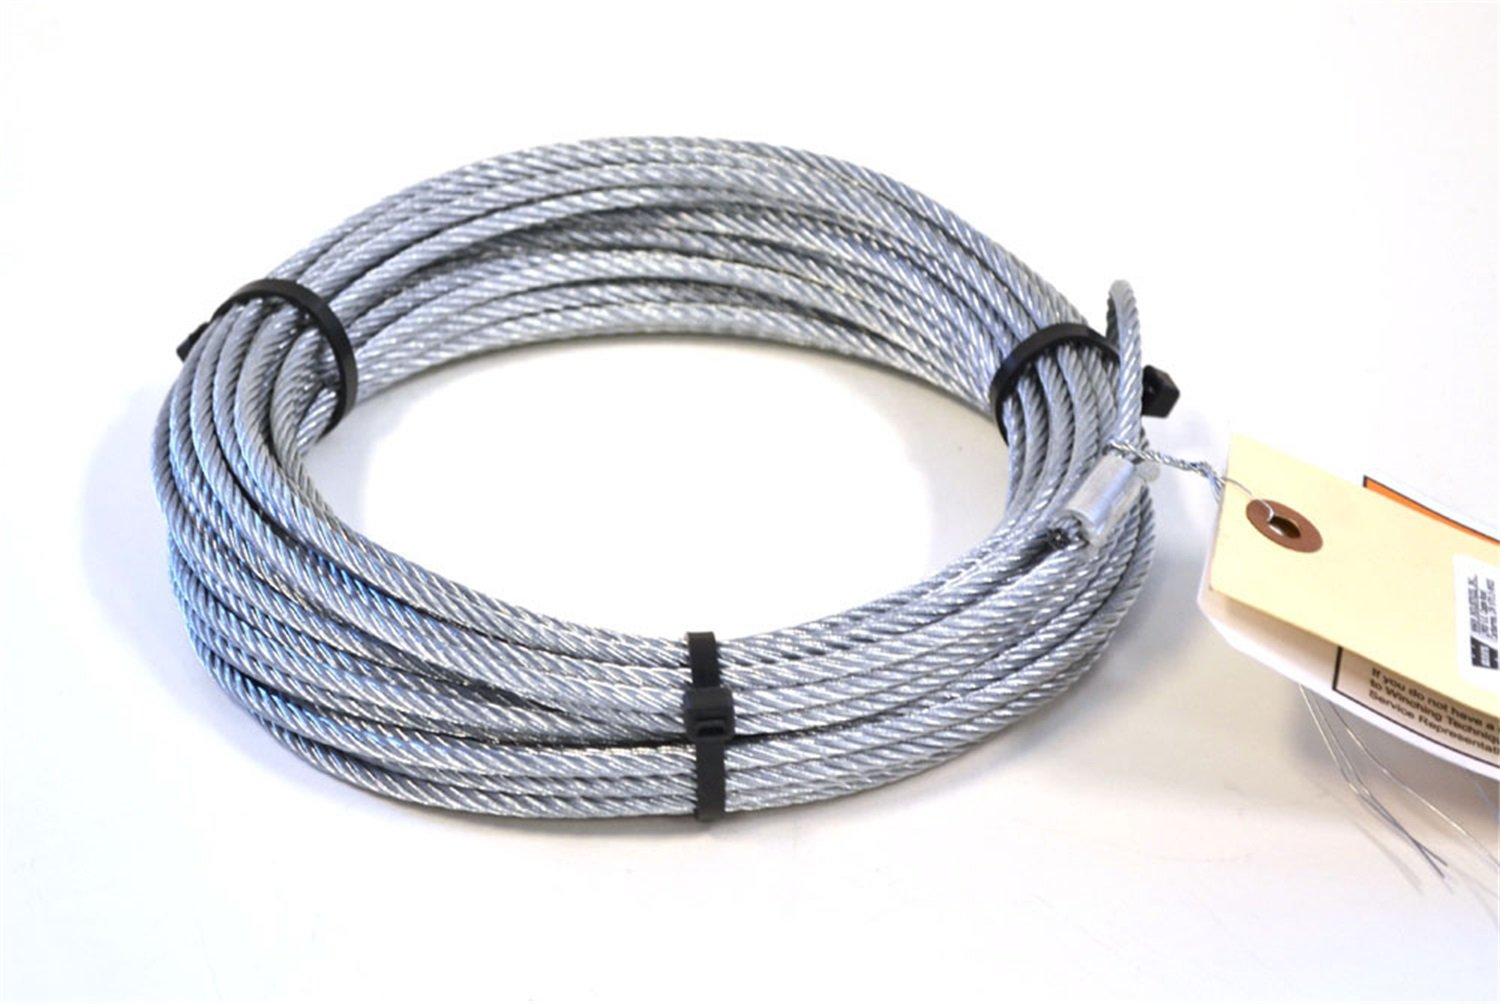 WARN 69336 Winch Rope - 5/32 in. x 50 ft.